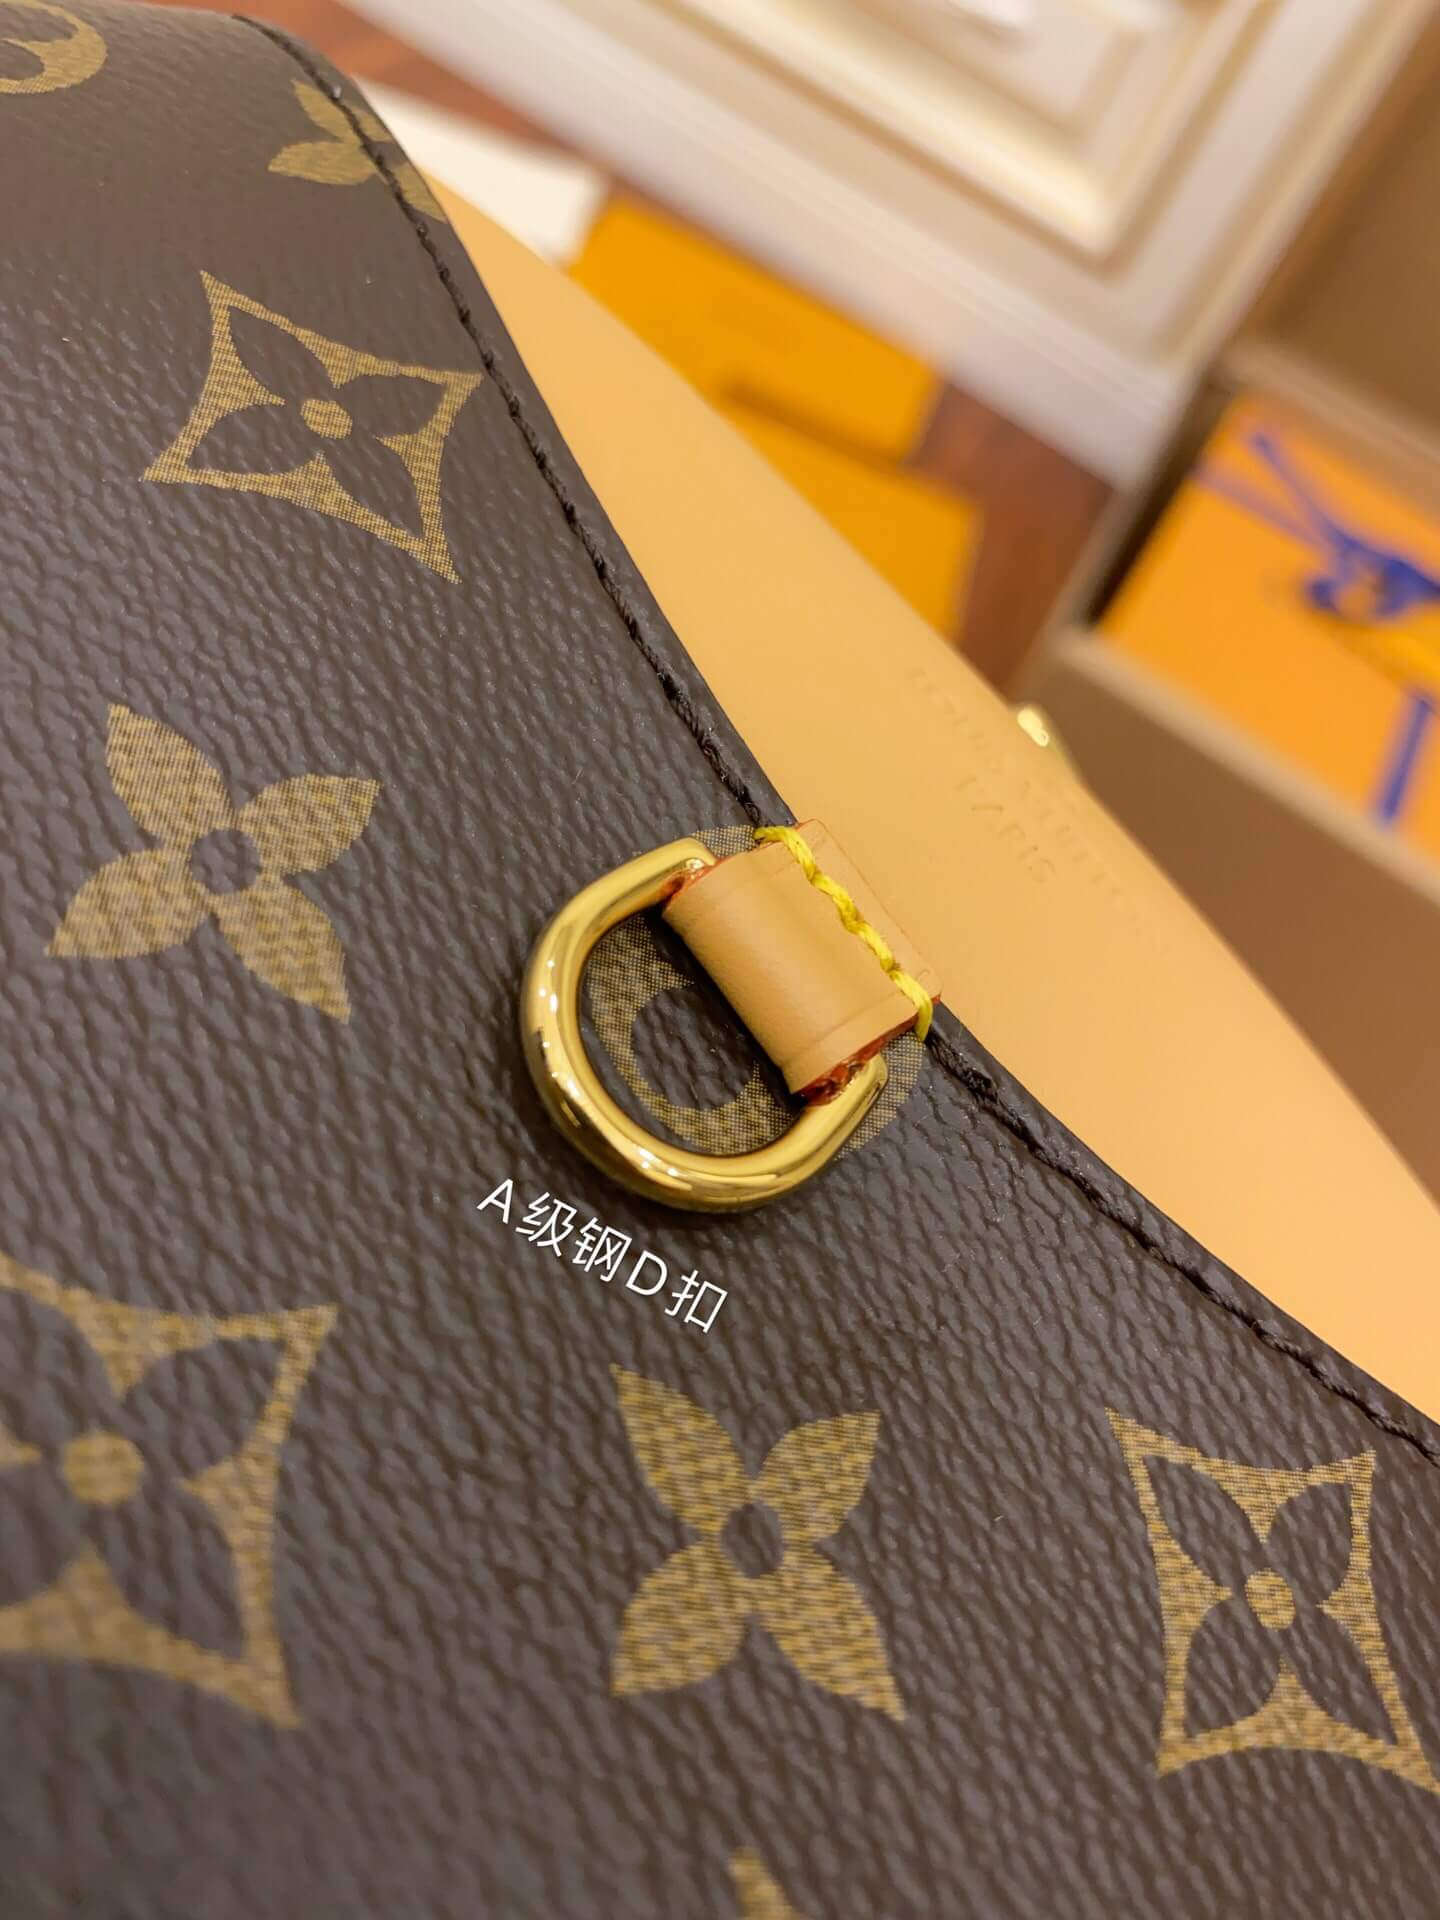 Louis Vuitton LV M45528 Deauville Mini相机包单肩斜挎包